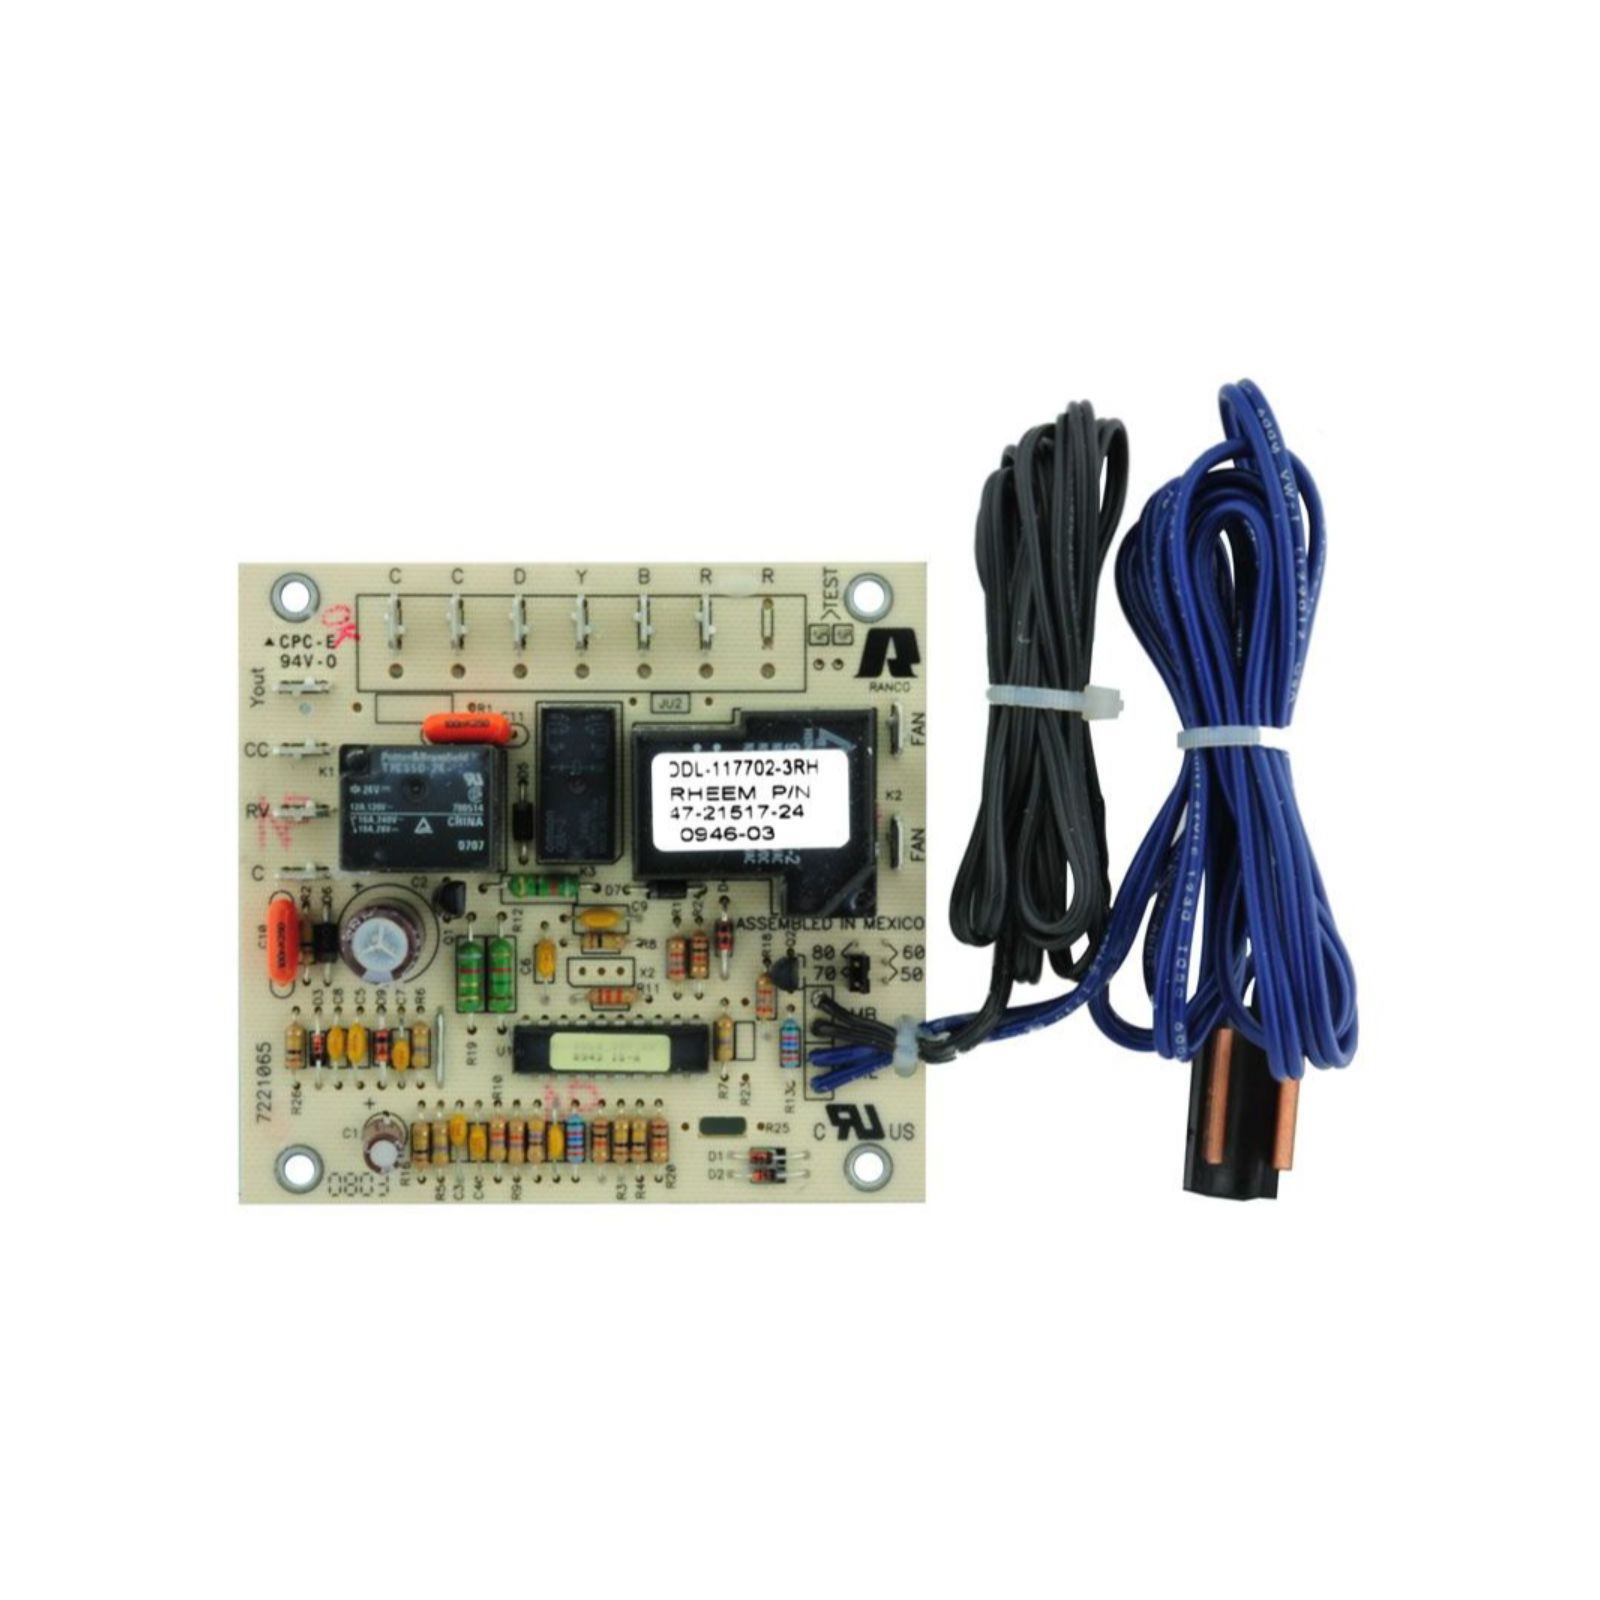 PROTECH 47-21517-24 - Defrost Control Board